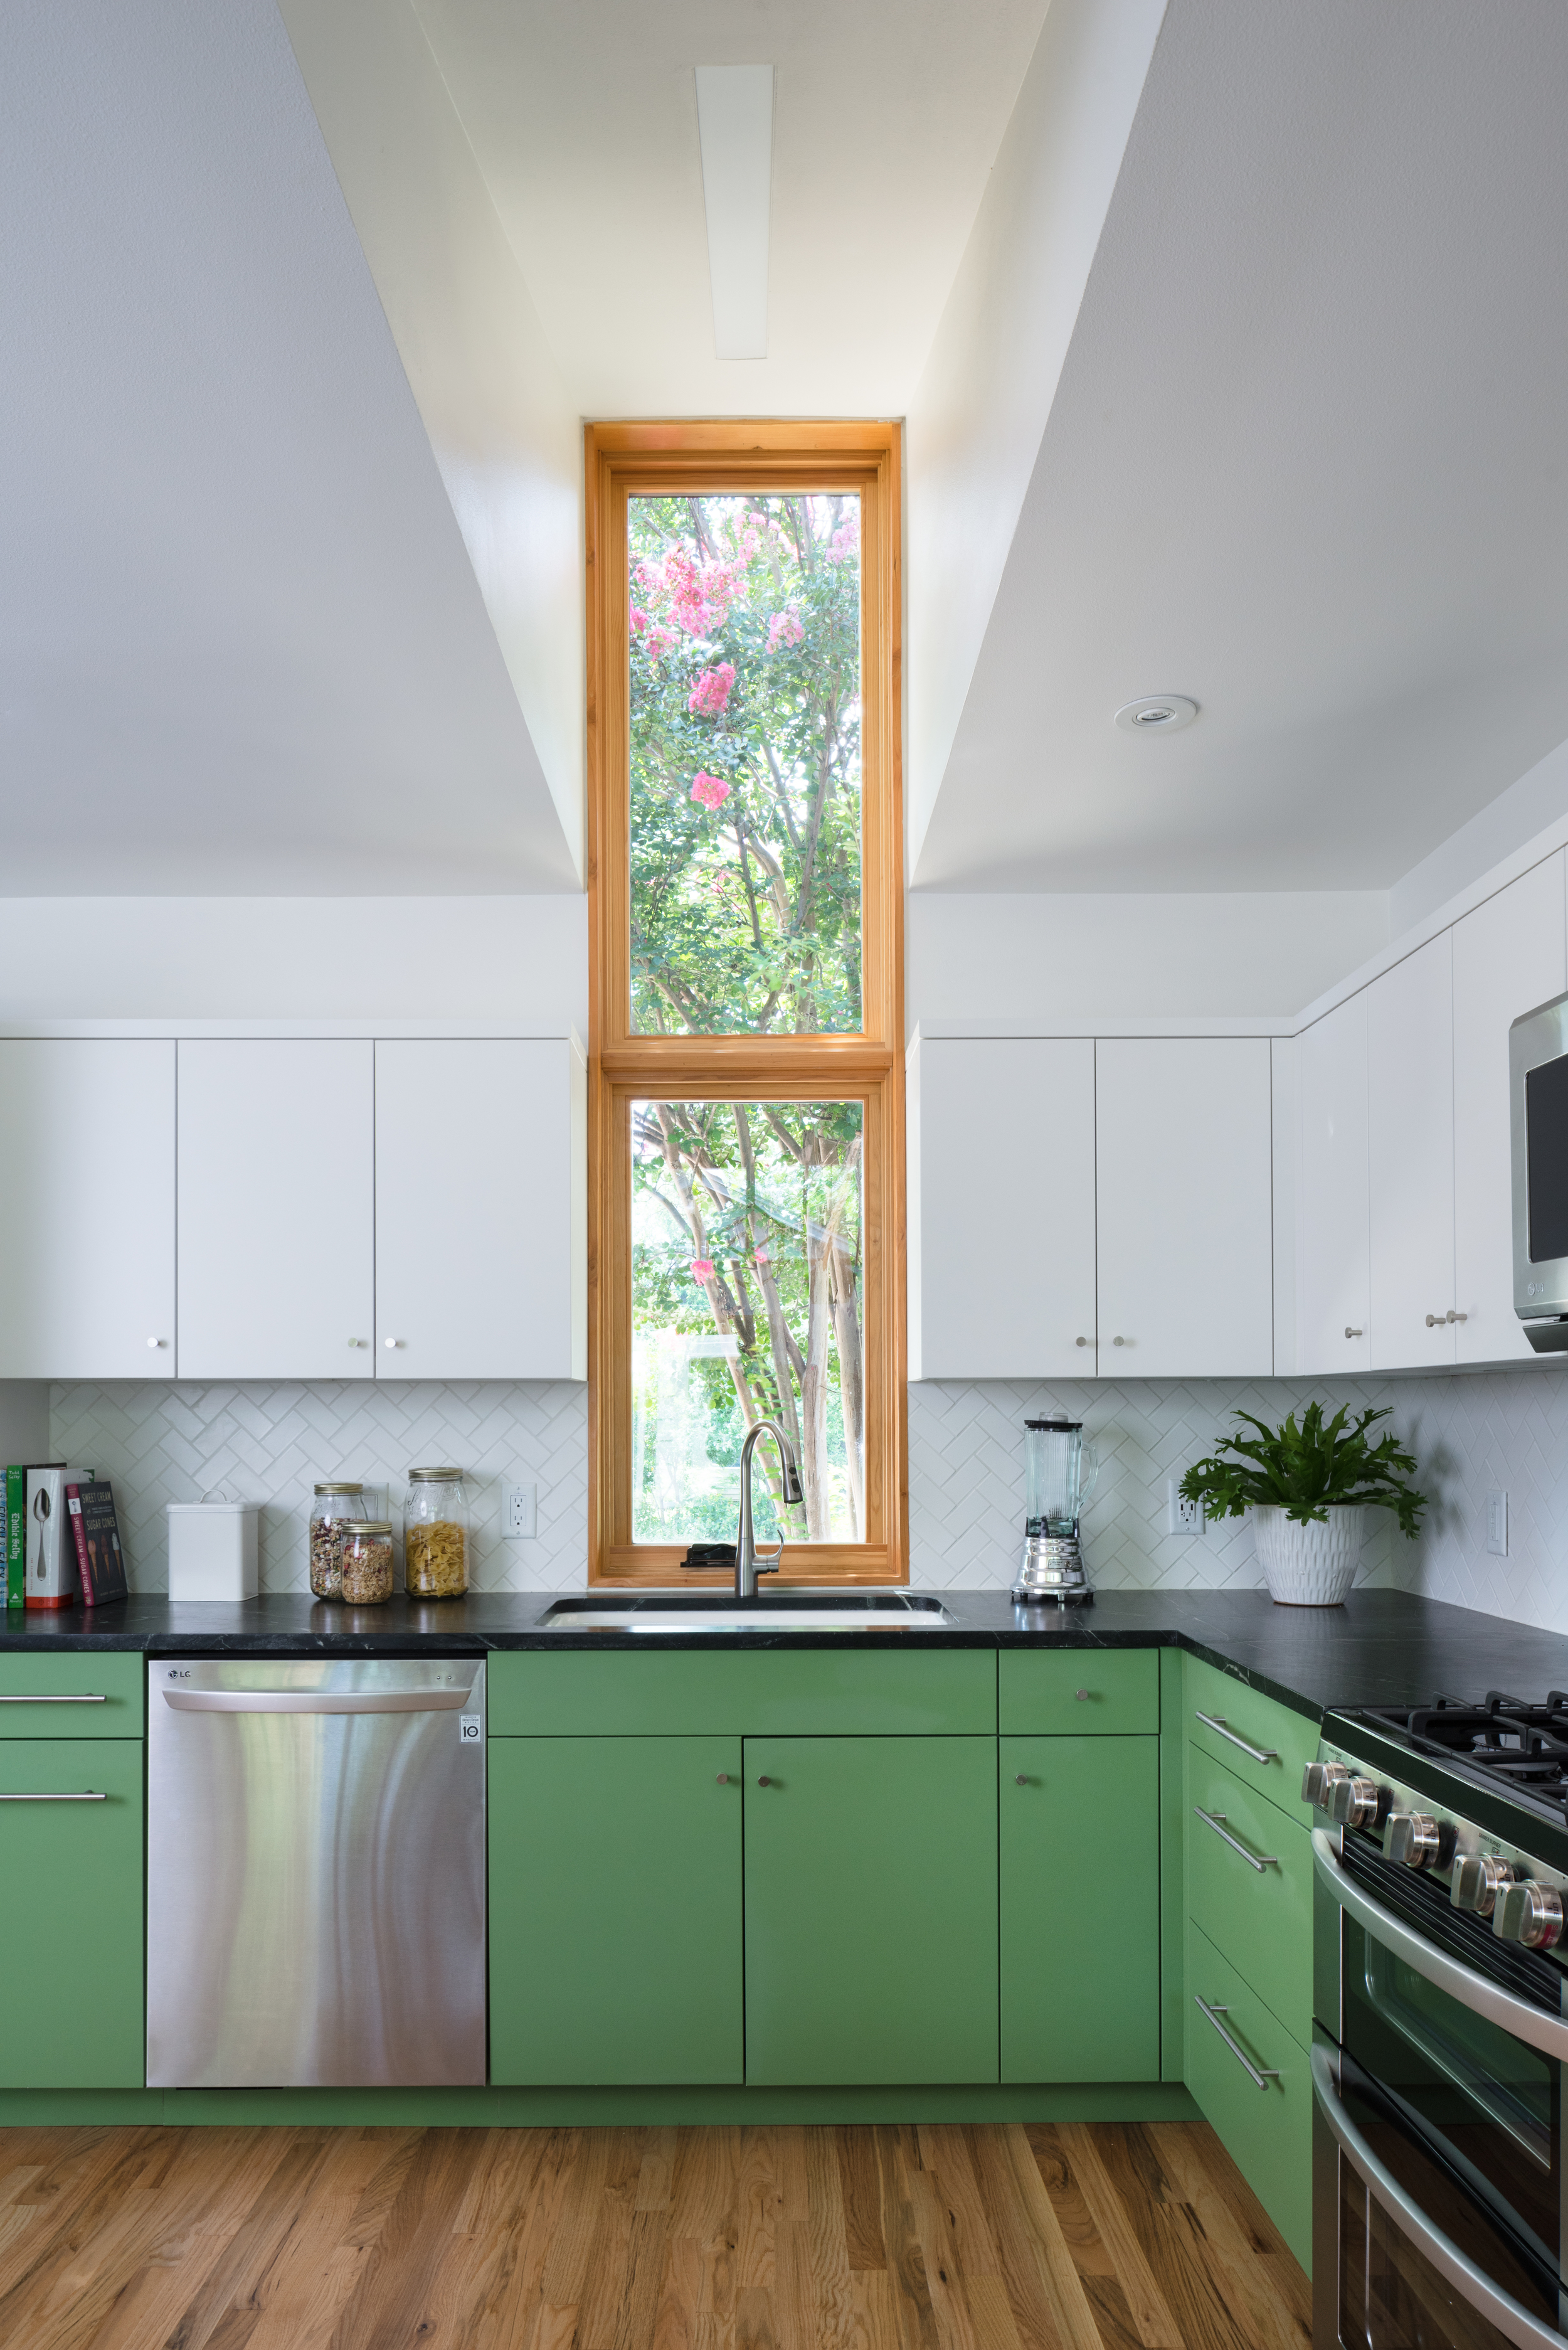 skyview_kitchen covejpg